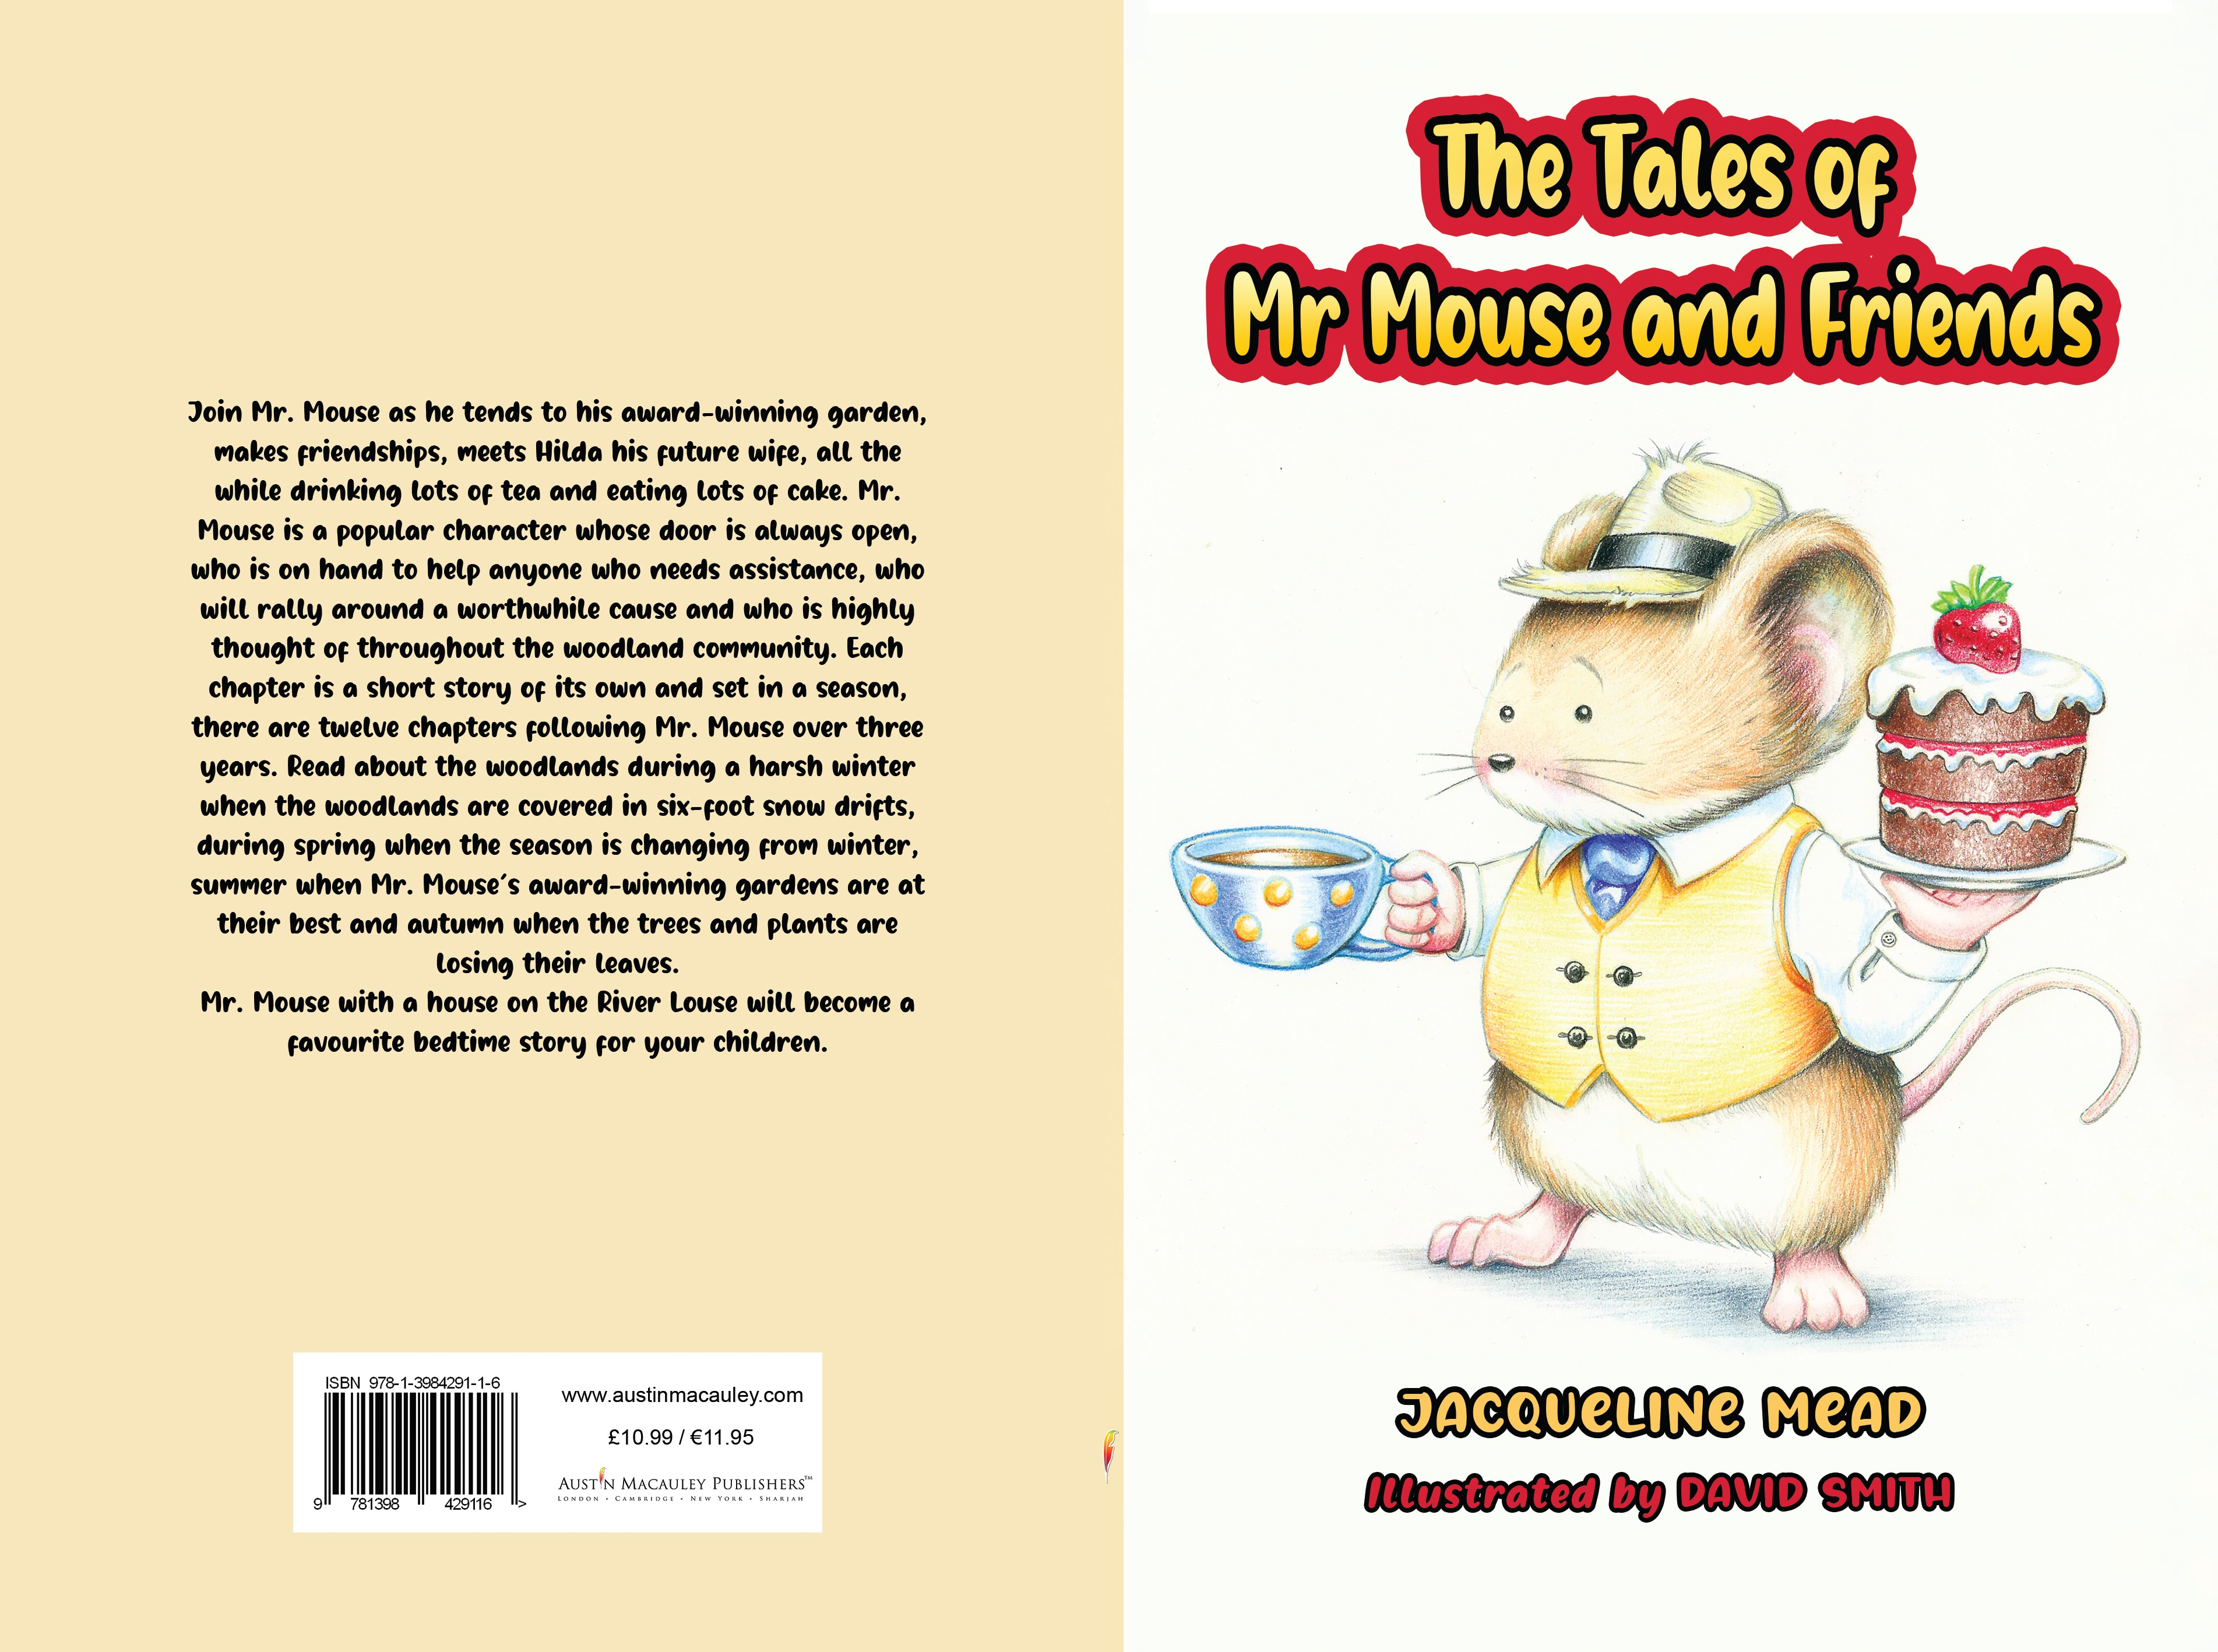 Mr Mouse by Jacqueline Mead illustrations by David Smith